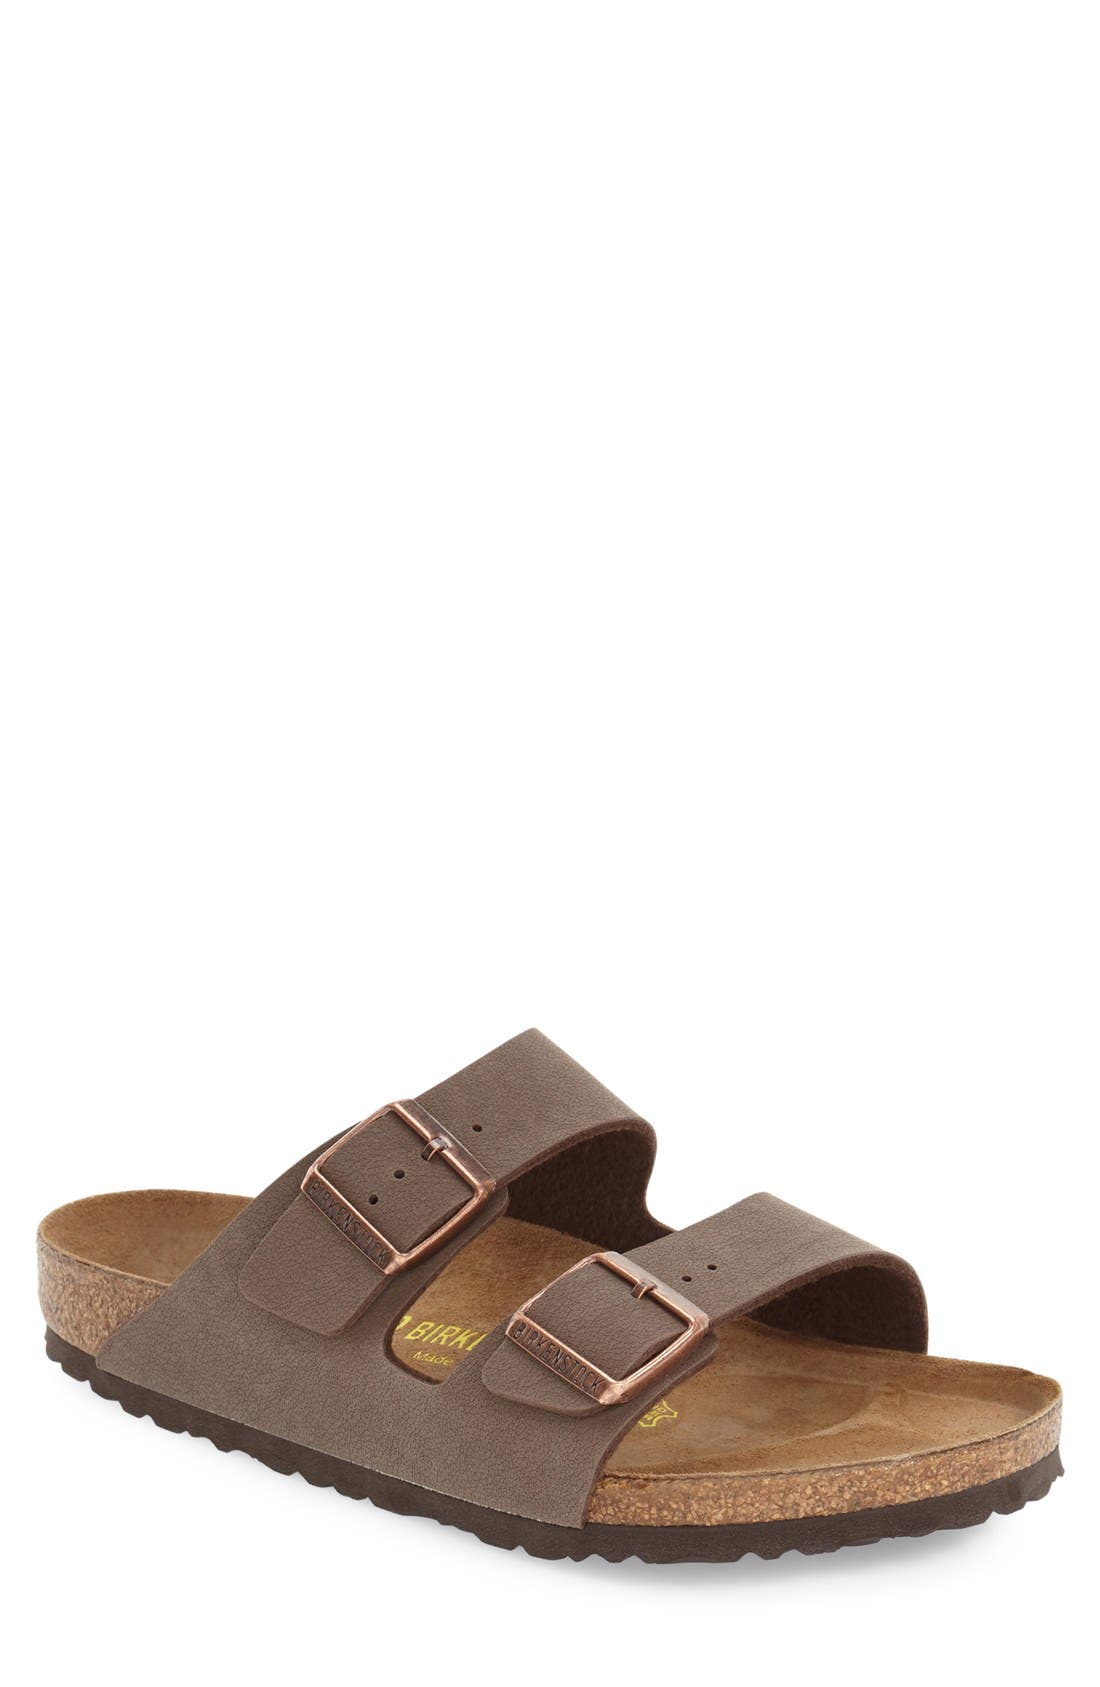 'Arizona' Slide Sandal,                             Main thumbnail 1, color,                             MOCHA